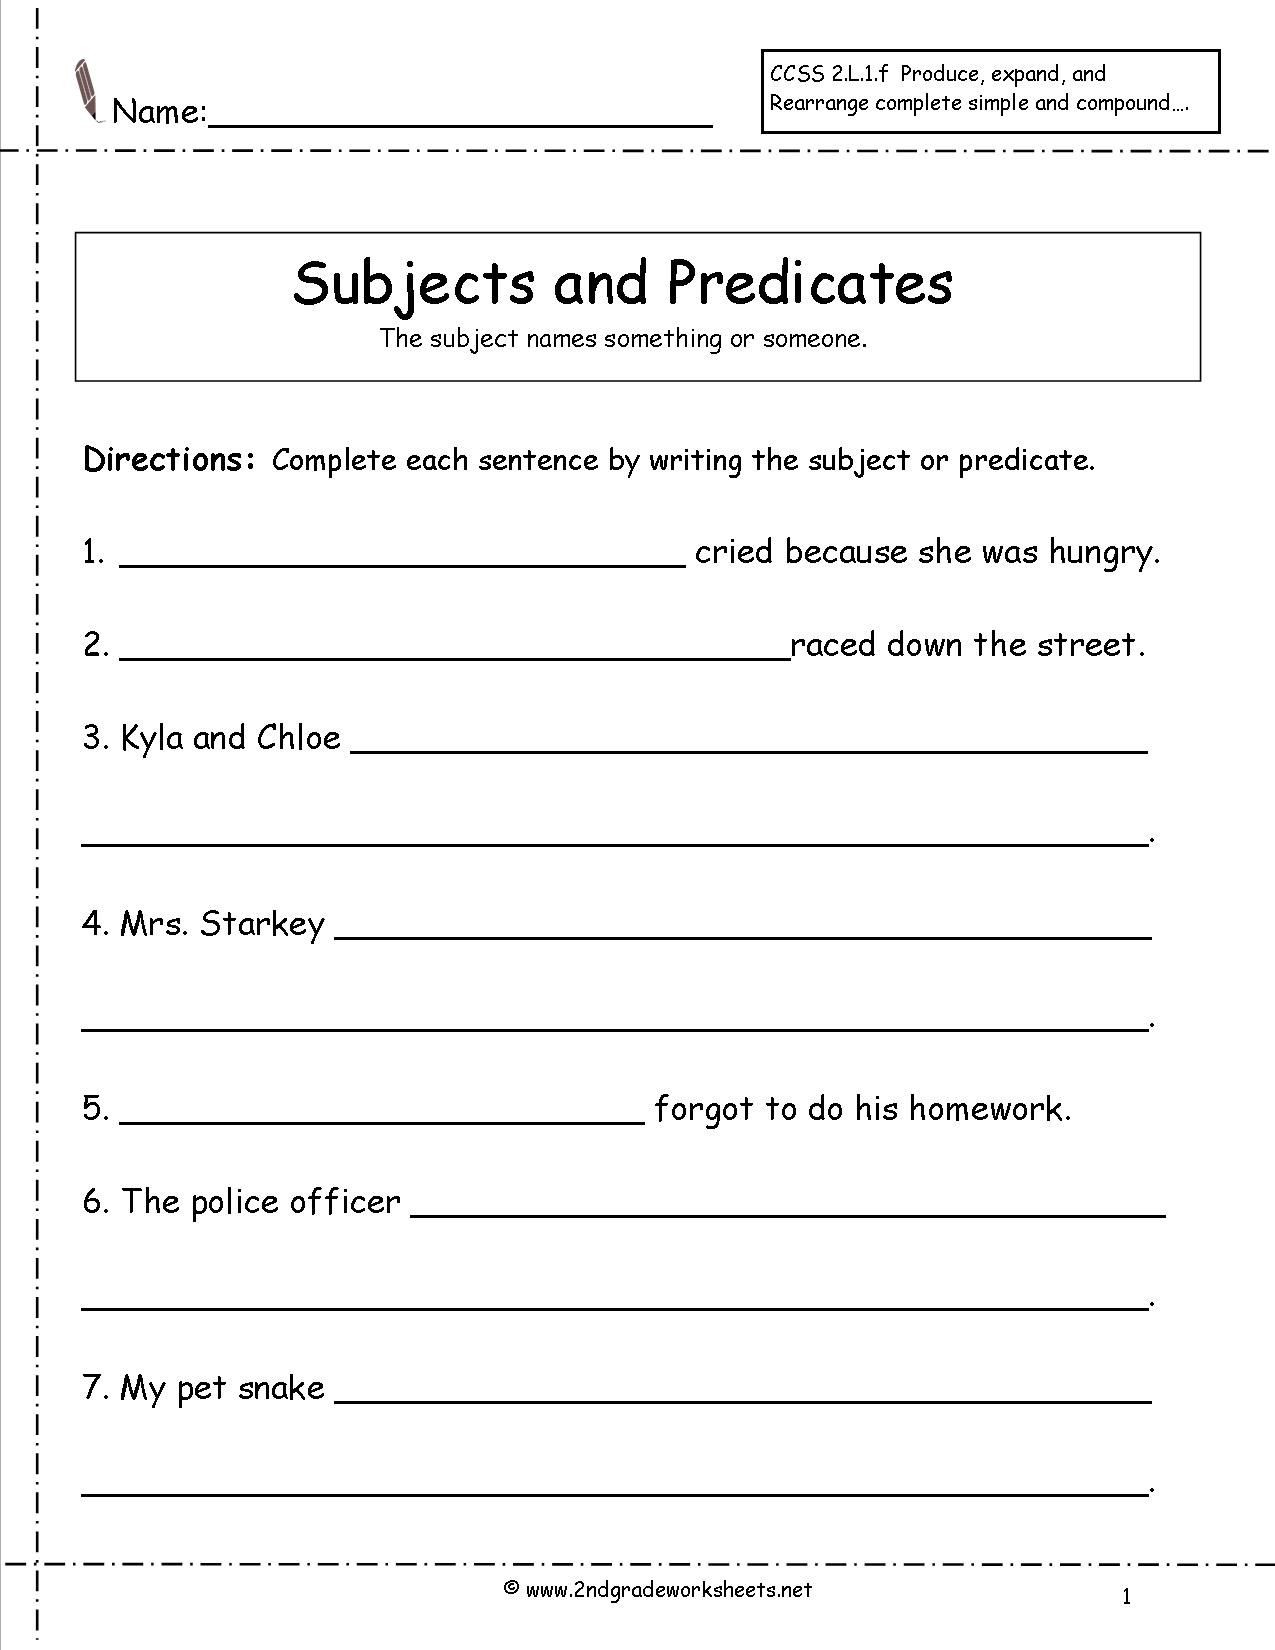 30 Subjects And Predicates Worksheet